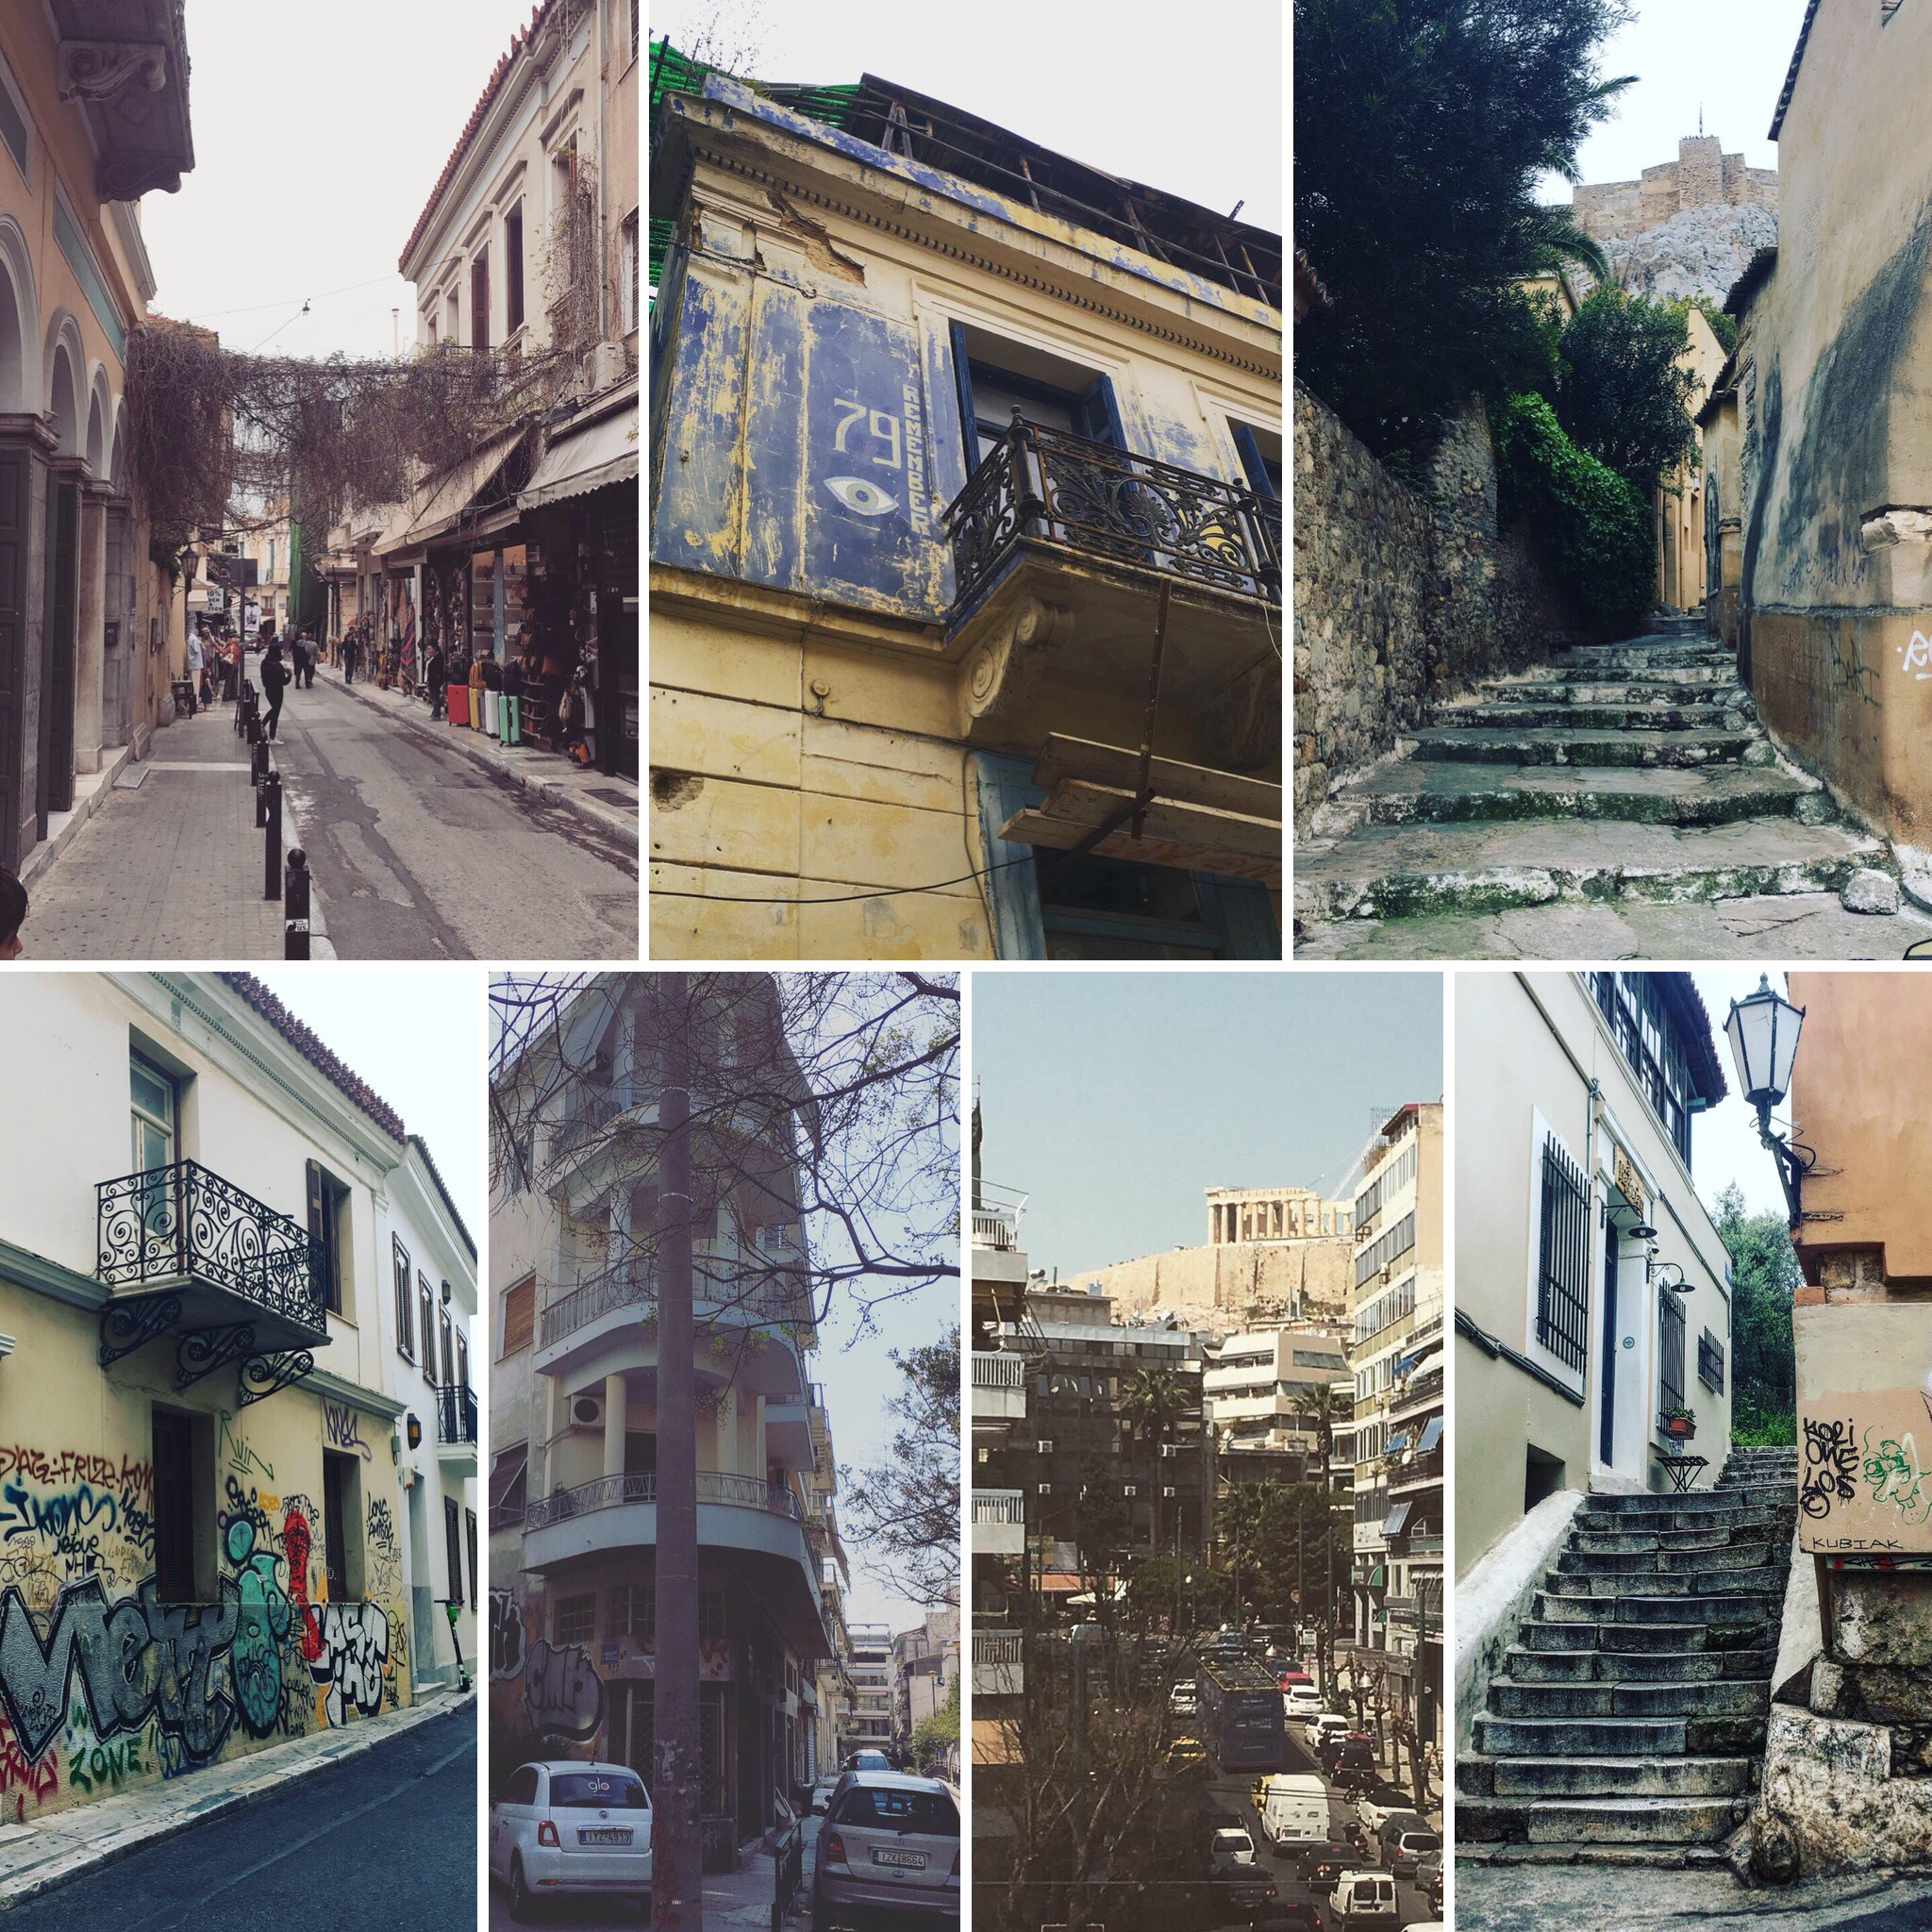 Some streets in Athens